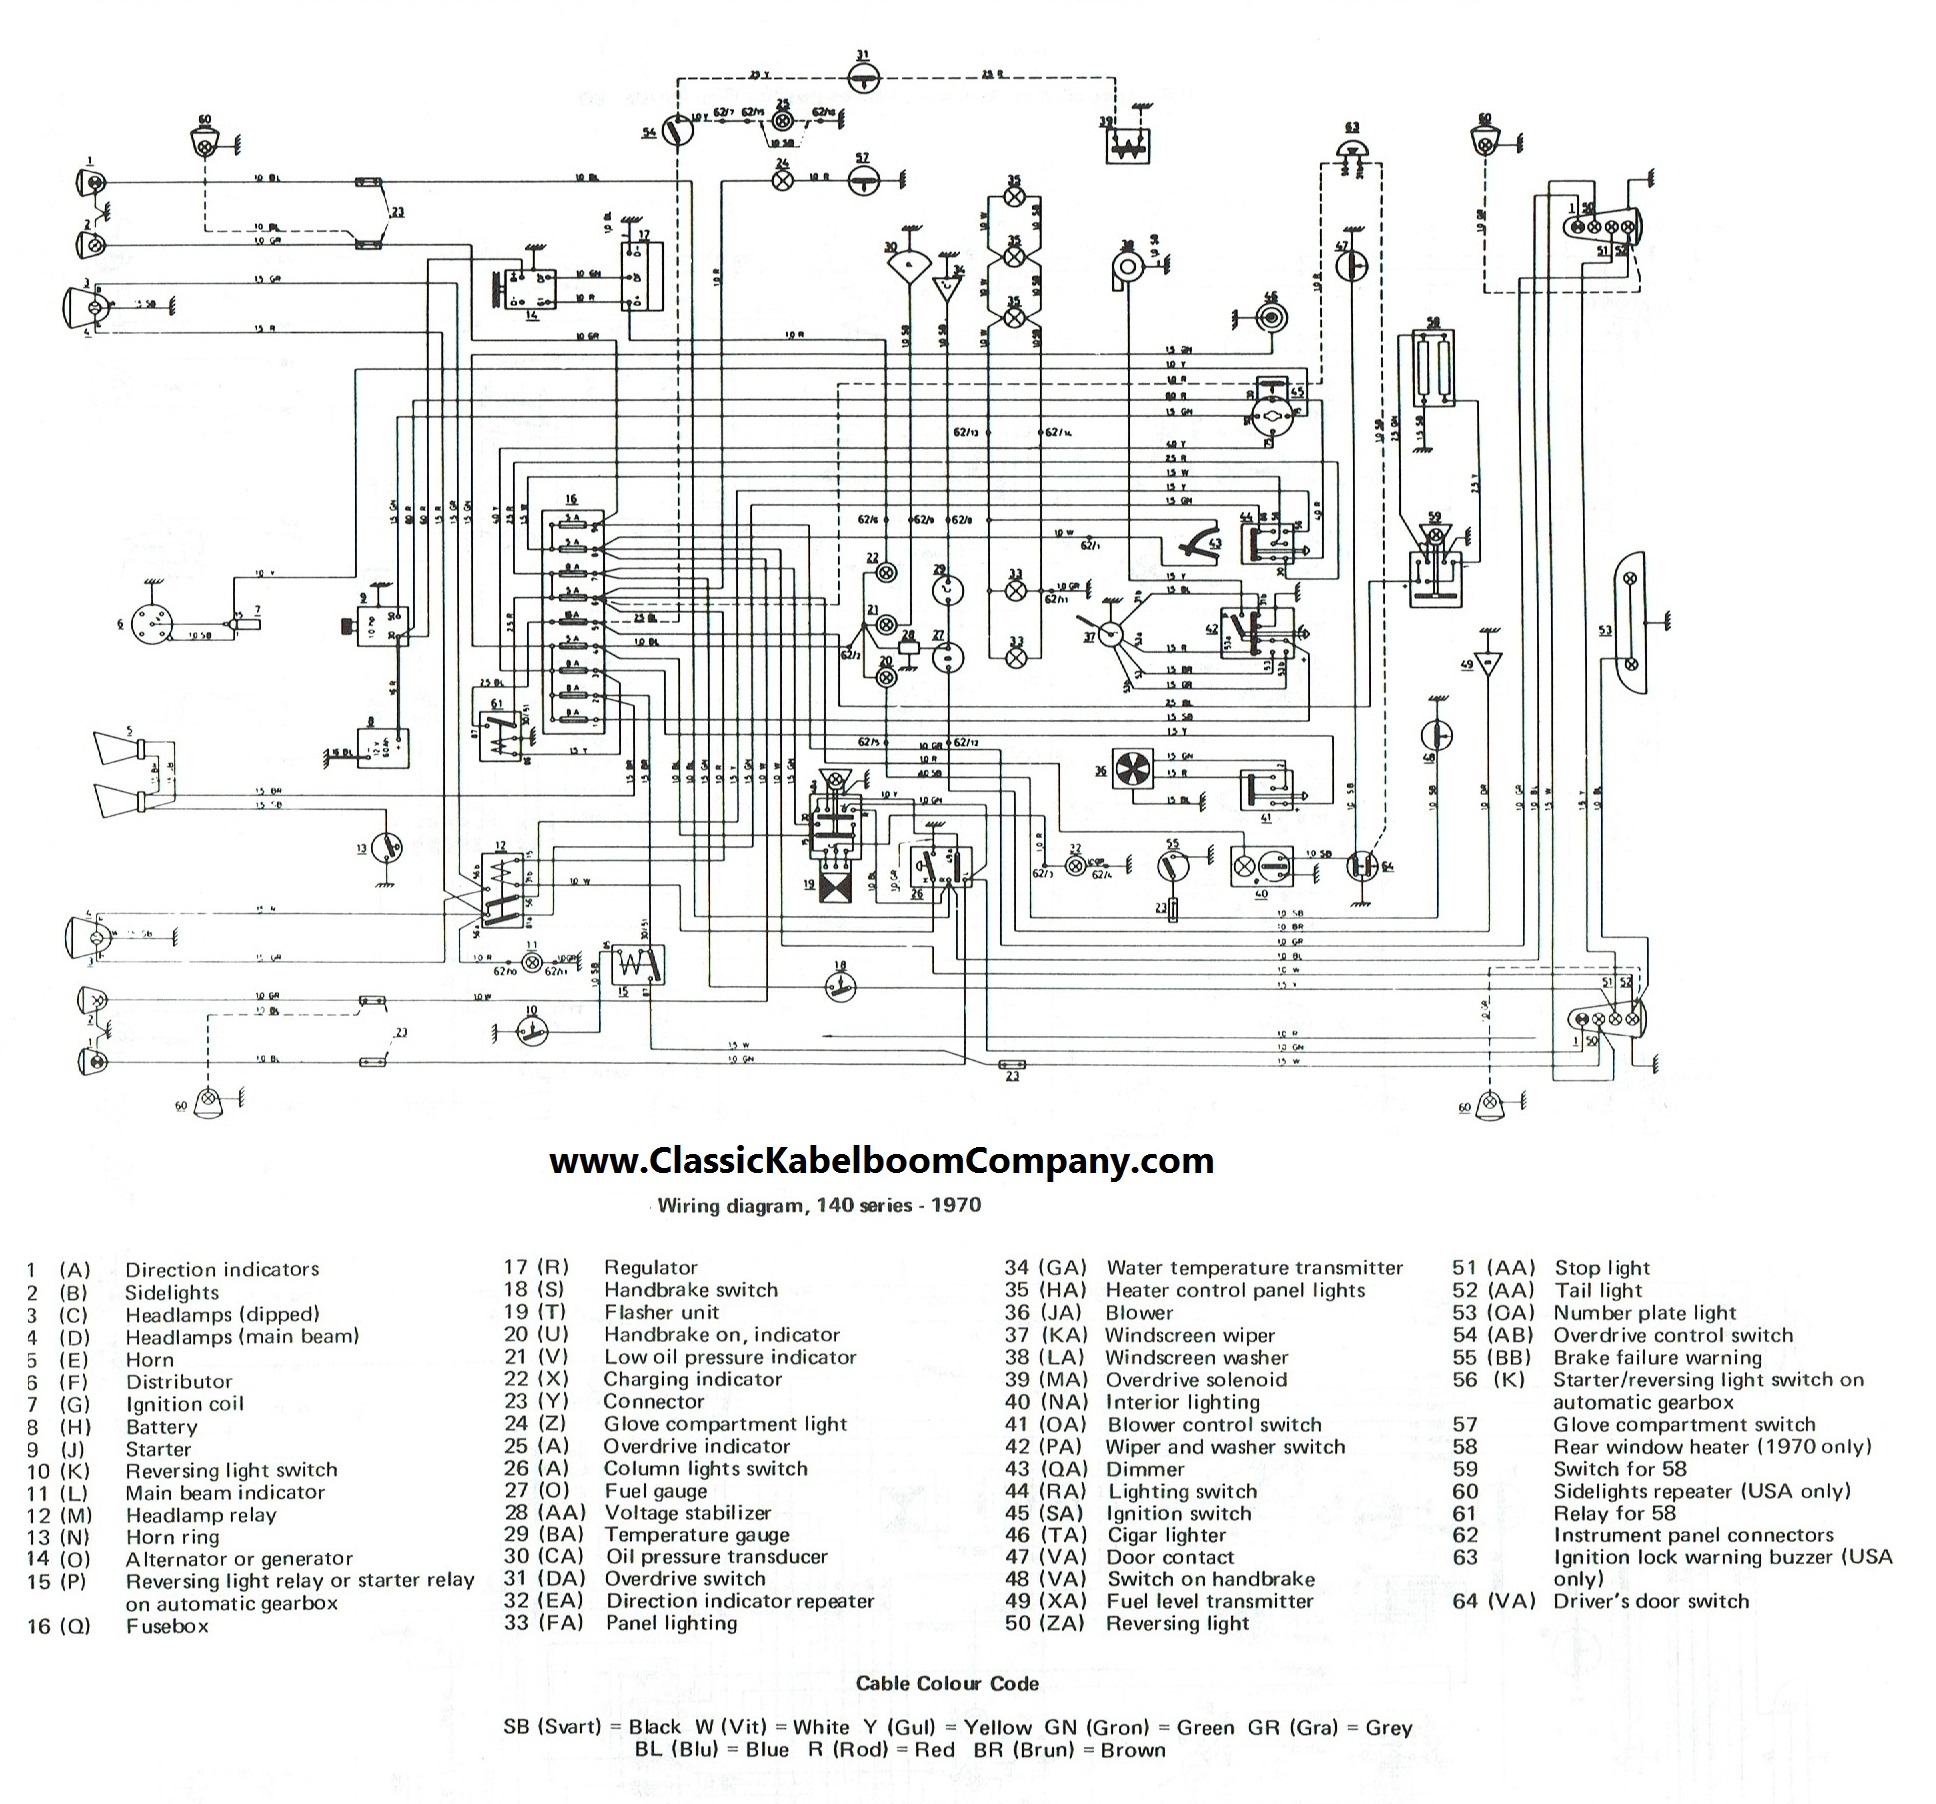 vol18?cdp\\\=a volvo wiring diagrams & volvo truck wiring diagrams carlplant Volvo V70 Engine Diagram at soozxer.org